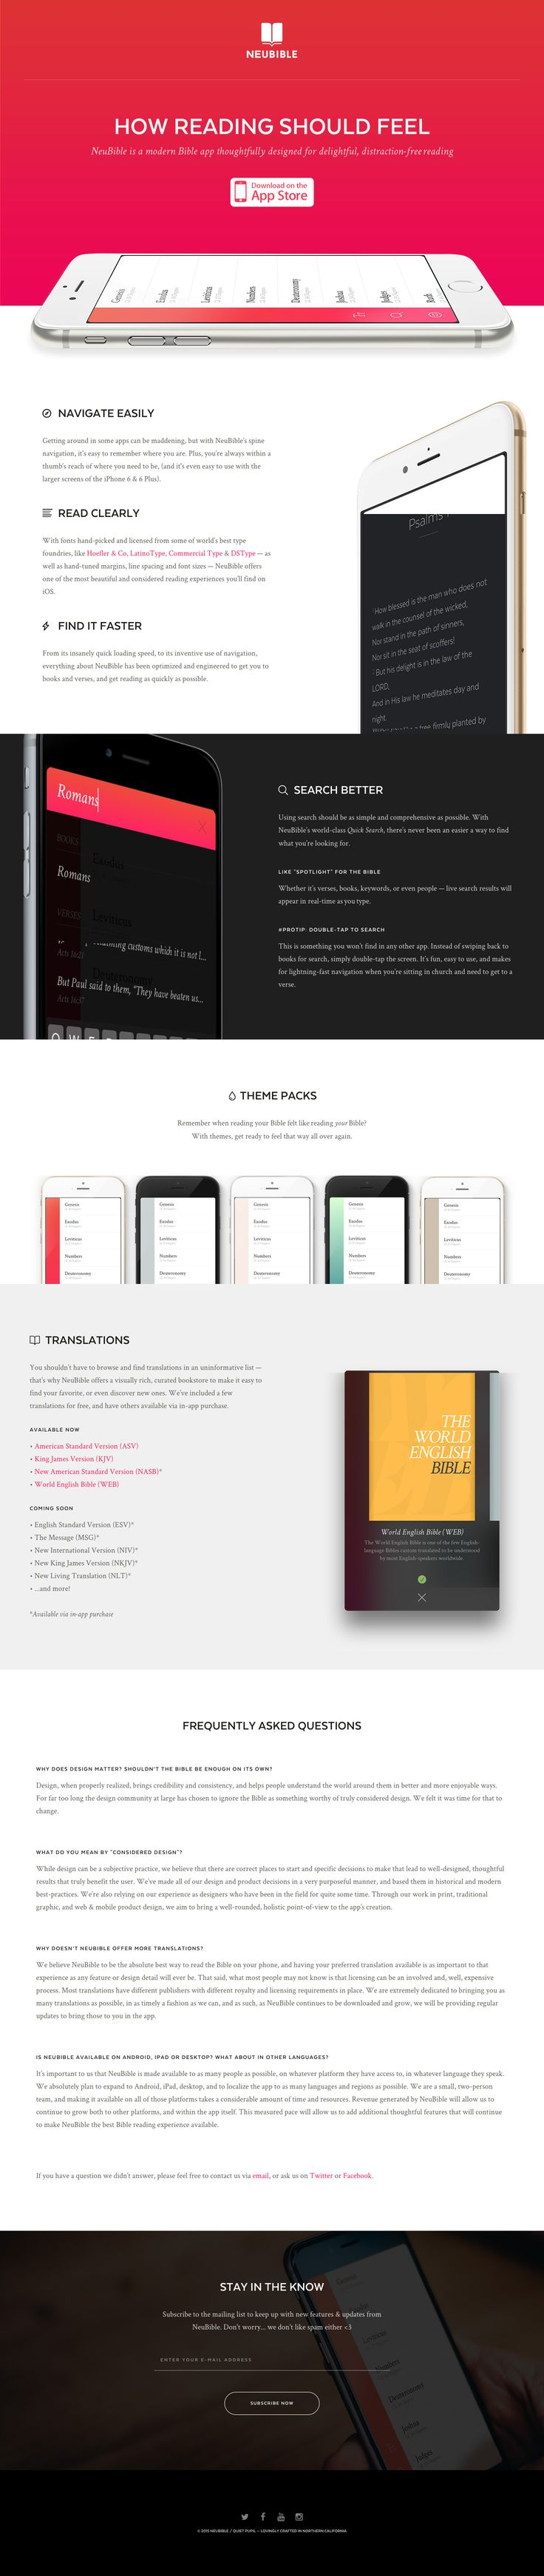 """Ex-Apple designer, Kory Westerhold and Yahoo design director, Aaron Martin, bring us this slick parallax scrolling One Pager for 'NeuBible' - a bible app designed for pleasurable reading. Minus points for the """"scrolljacking"""" but overall a beautiful website and product design by the duo. Bet this is going to sell."""